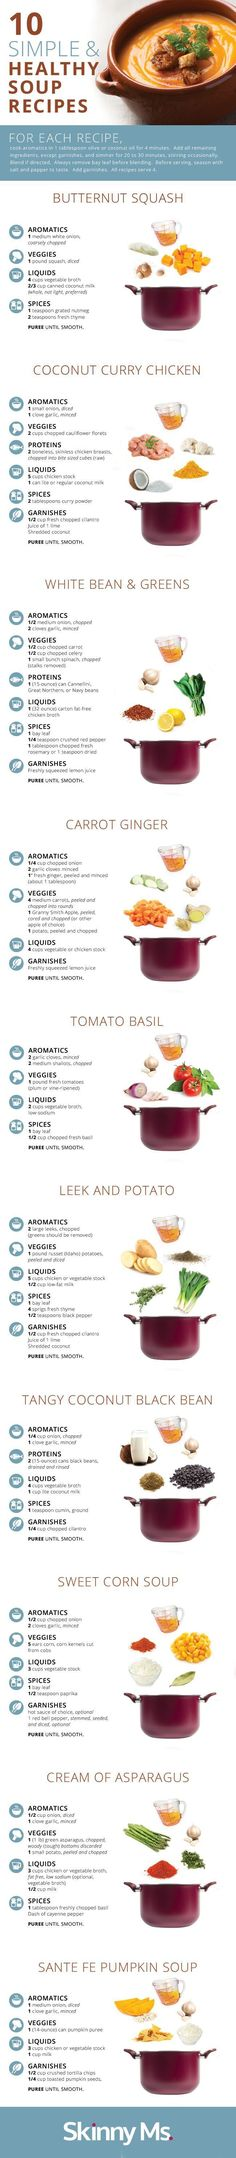 10 Simple and Healthy Soup Recipes. Souper easy! #souprecipes #easyhealthysoups